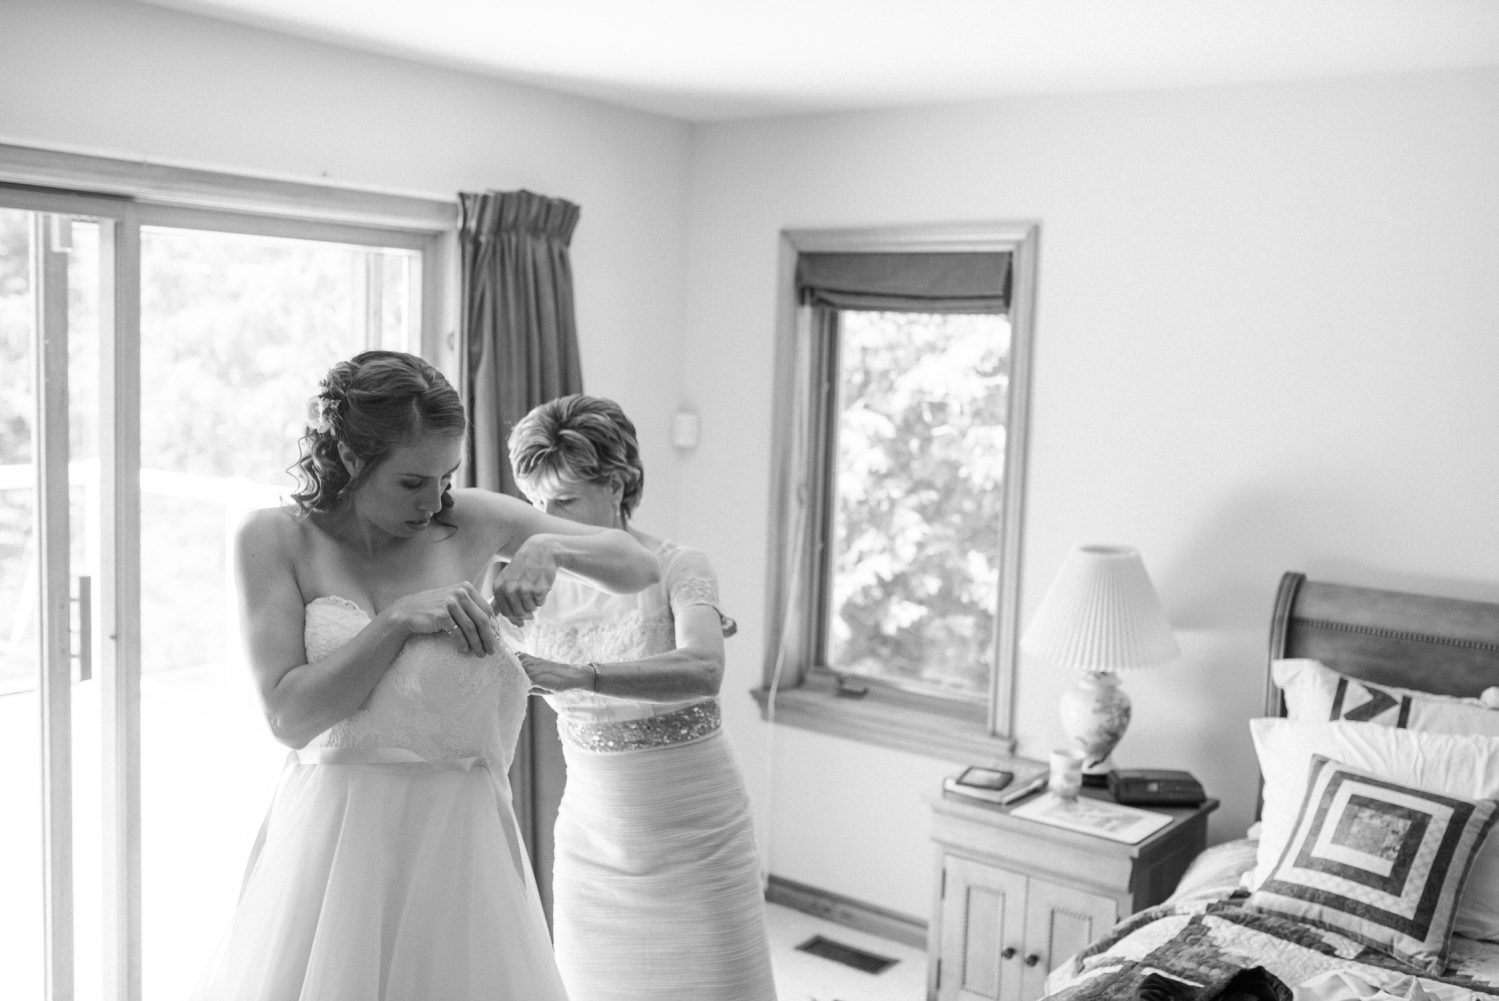 Mom helping her daughter with wedding dress